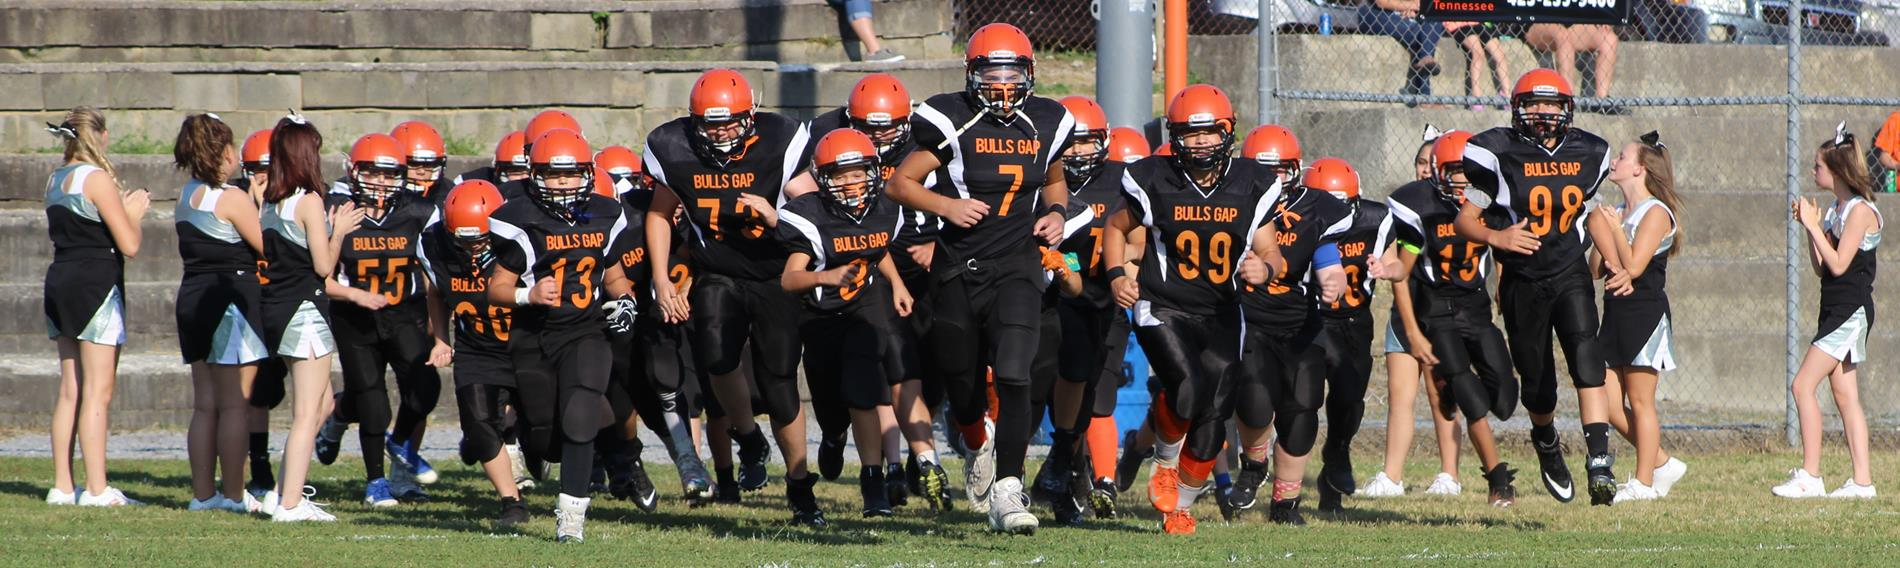 football team taking the field